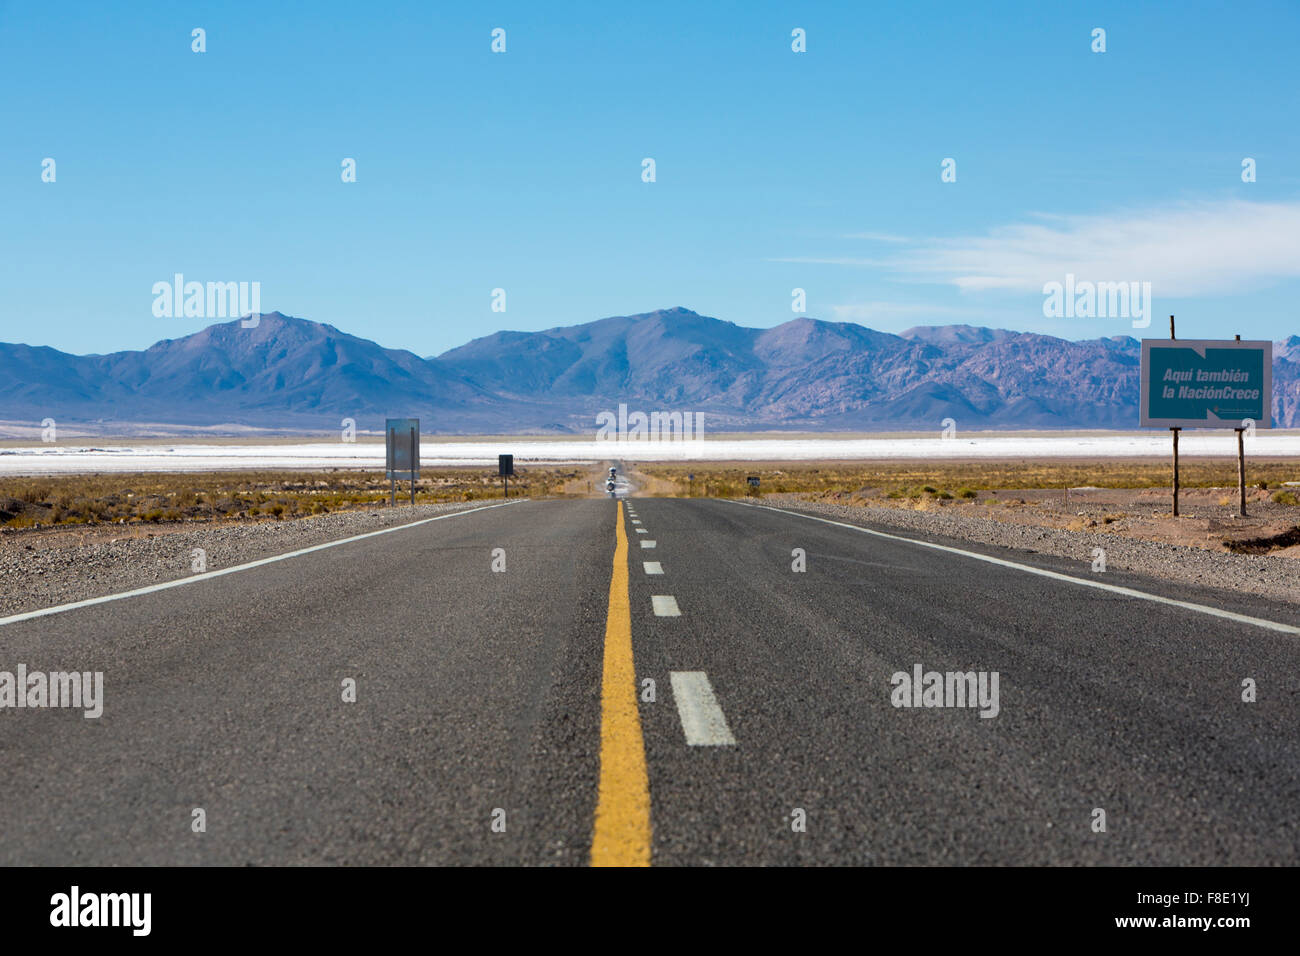 National Route 40 in Northern Argentina - Stock Image